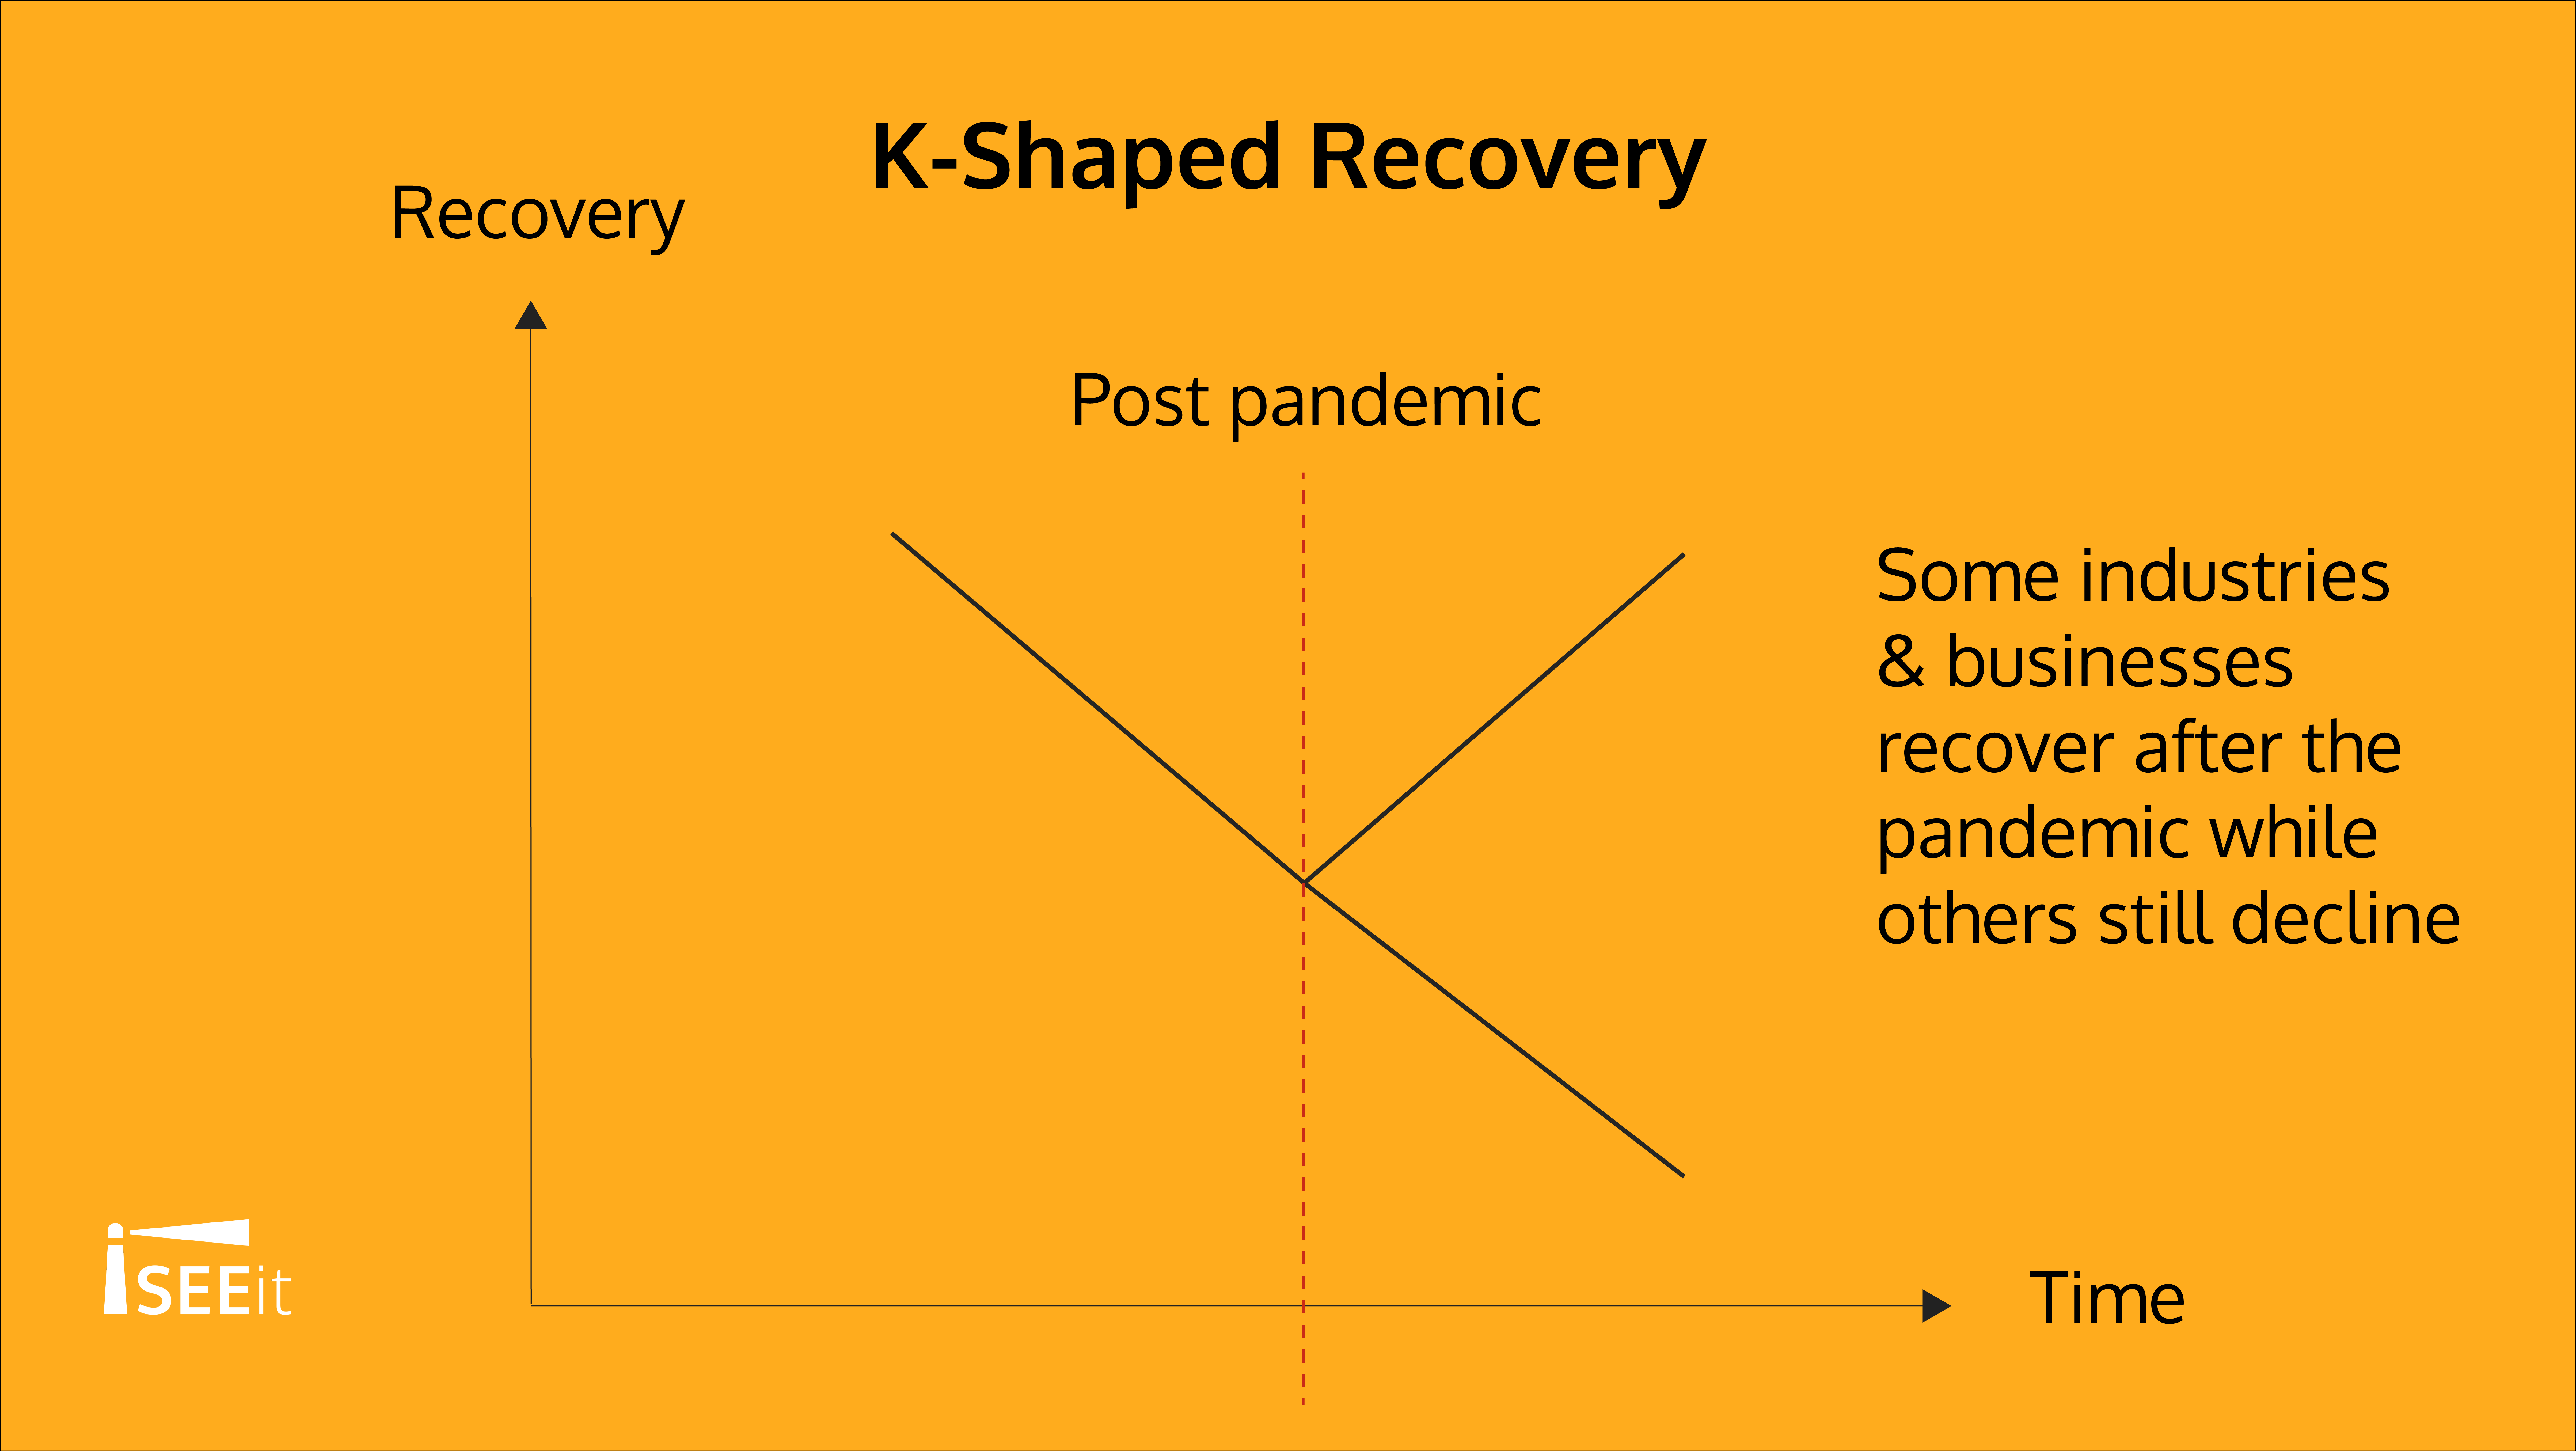 k-shaped-recovery-iseeit